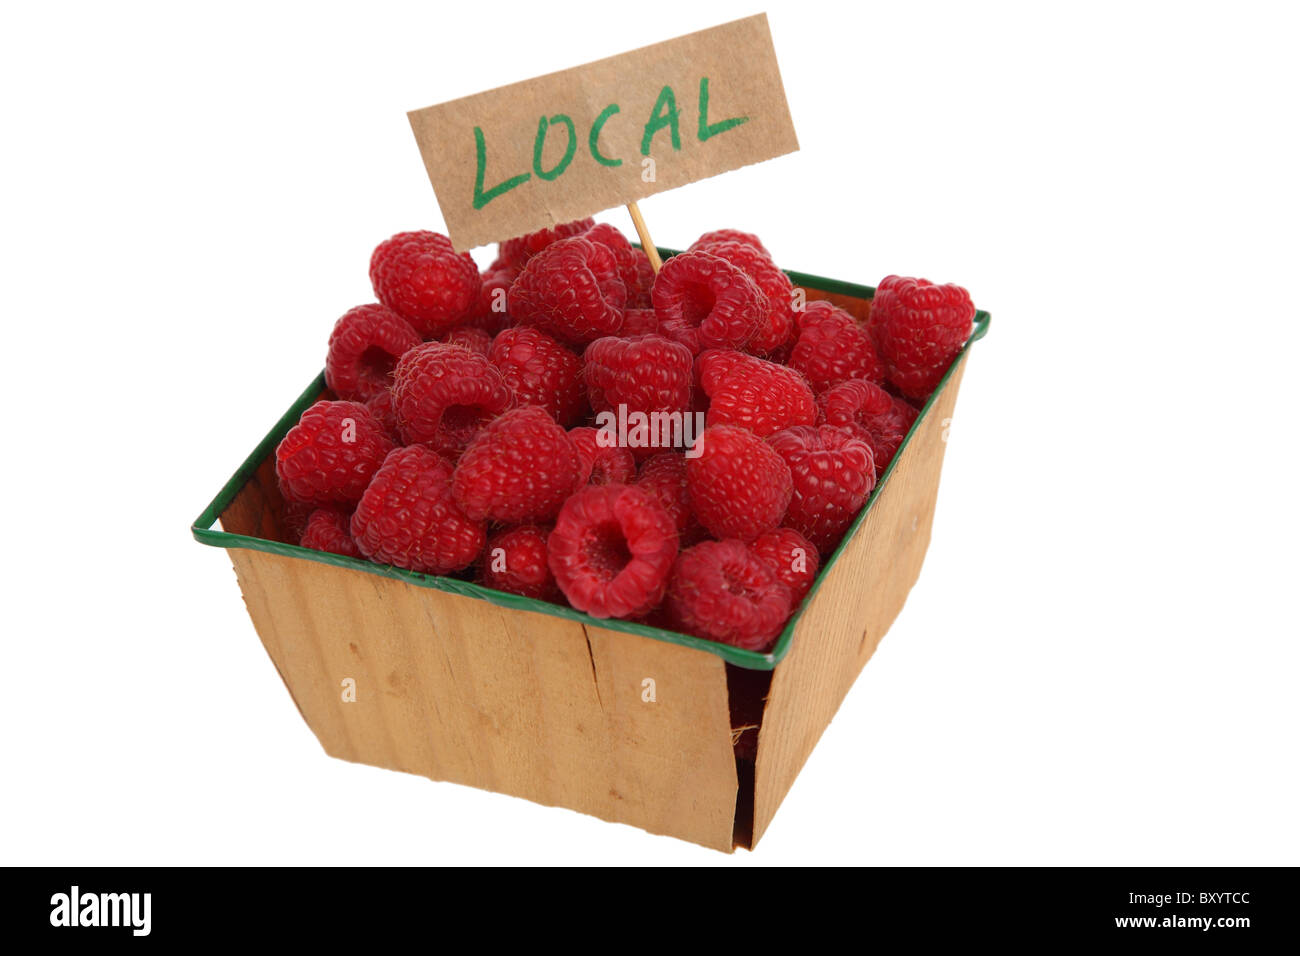 Raspberries with 'LOCAL' sign on white background - Stock Image